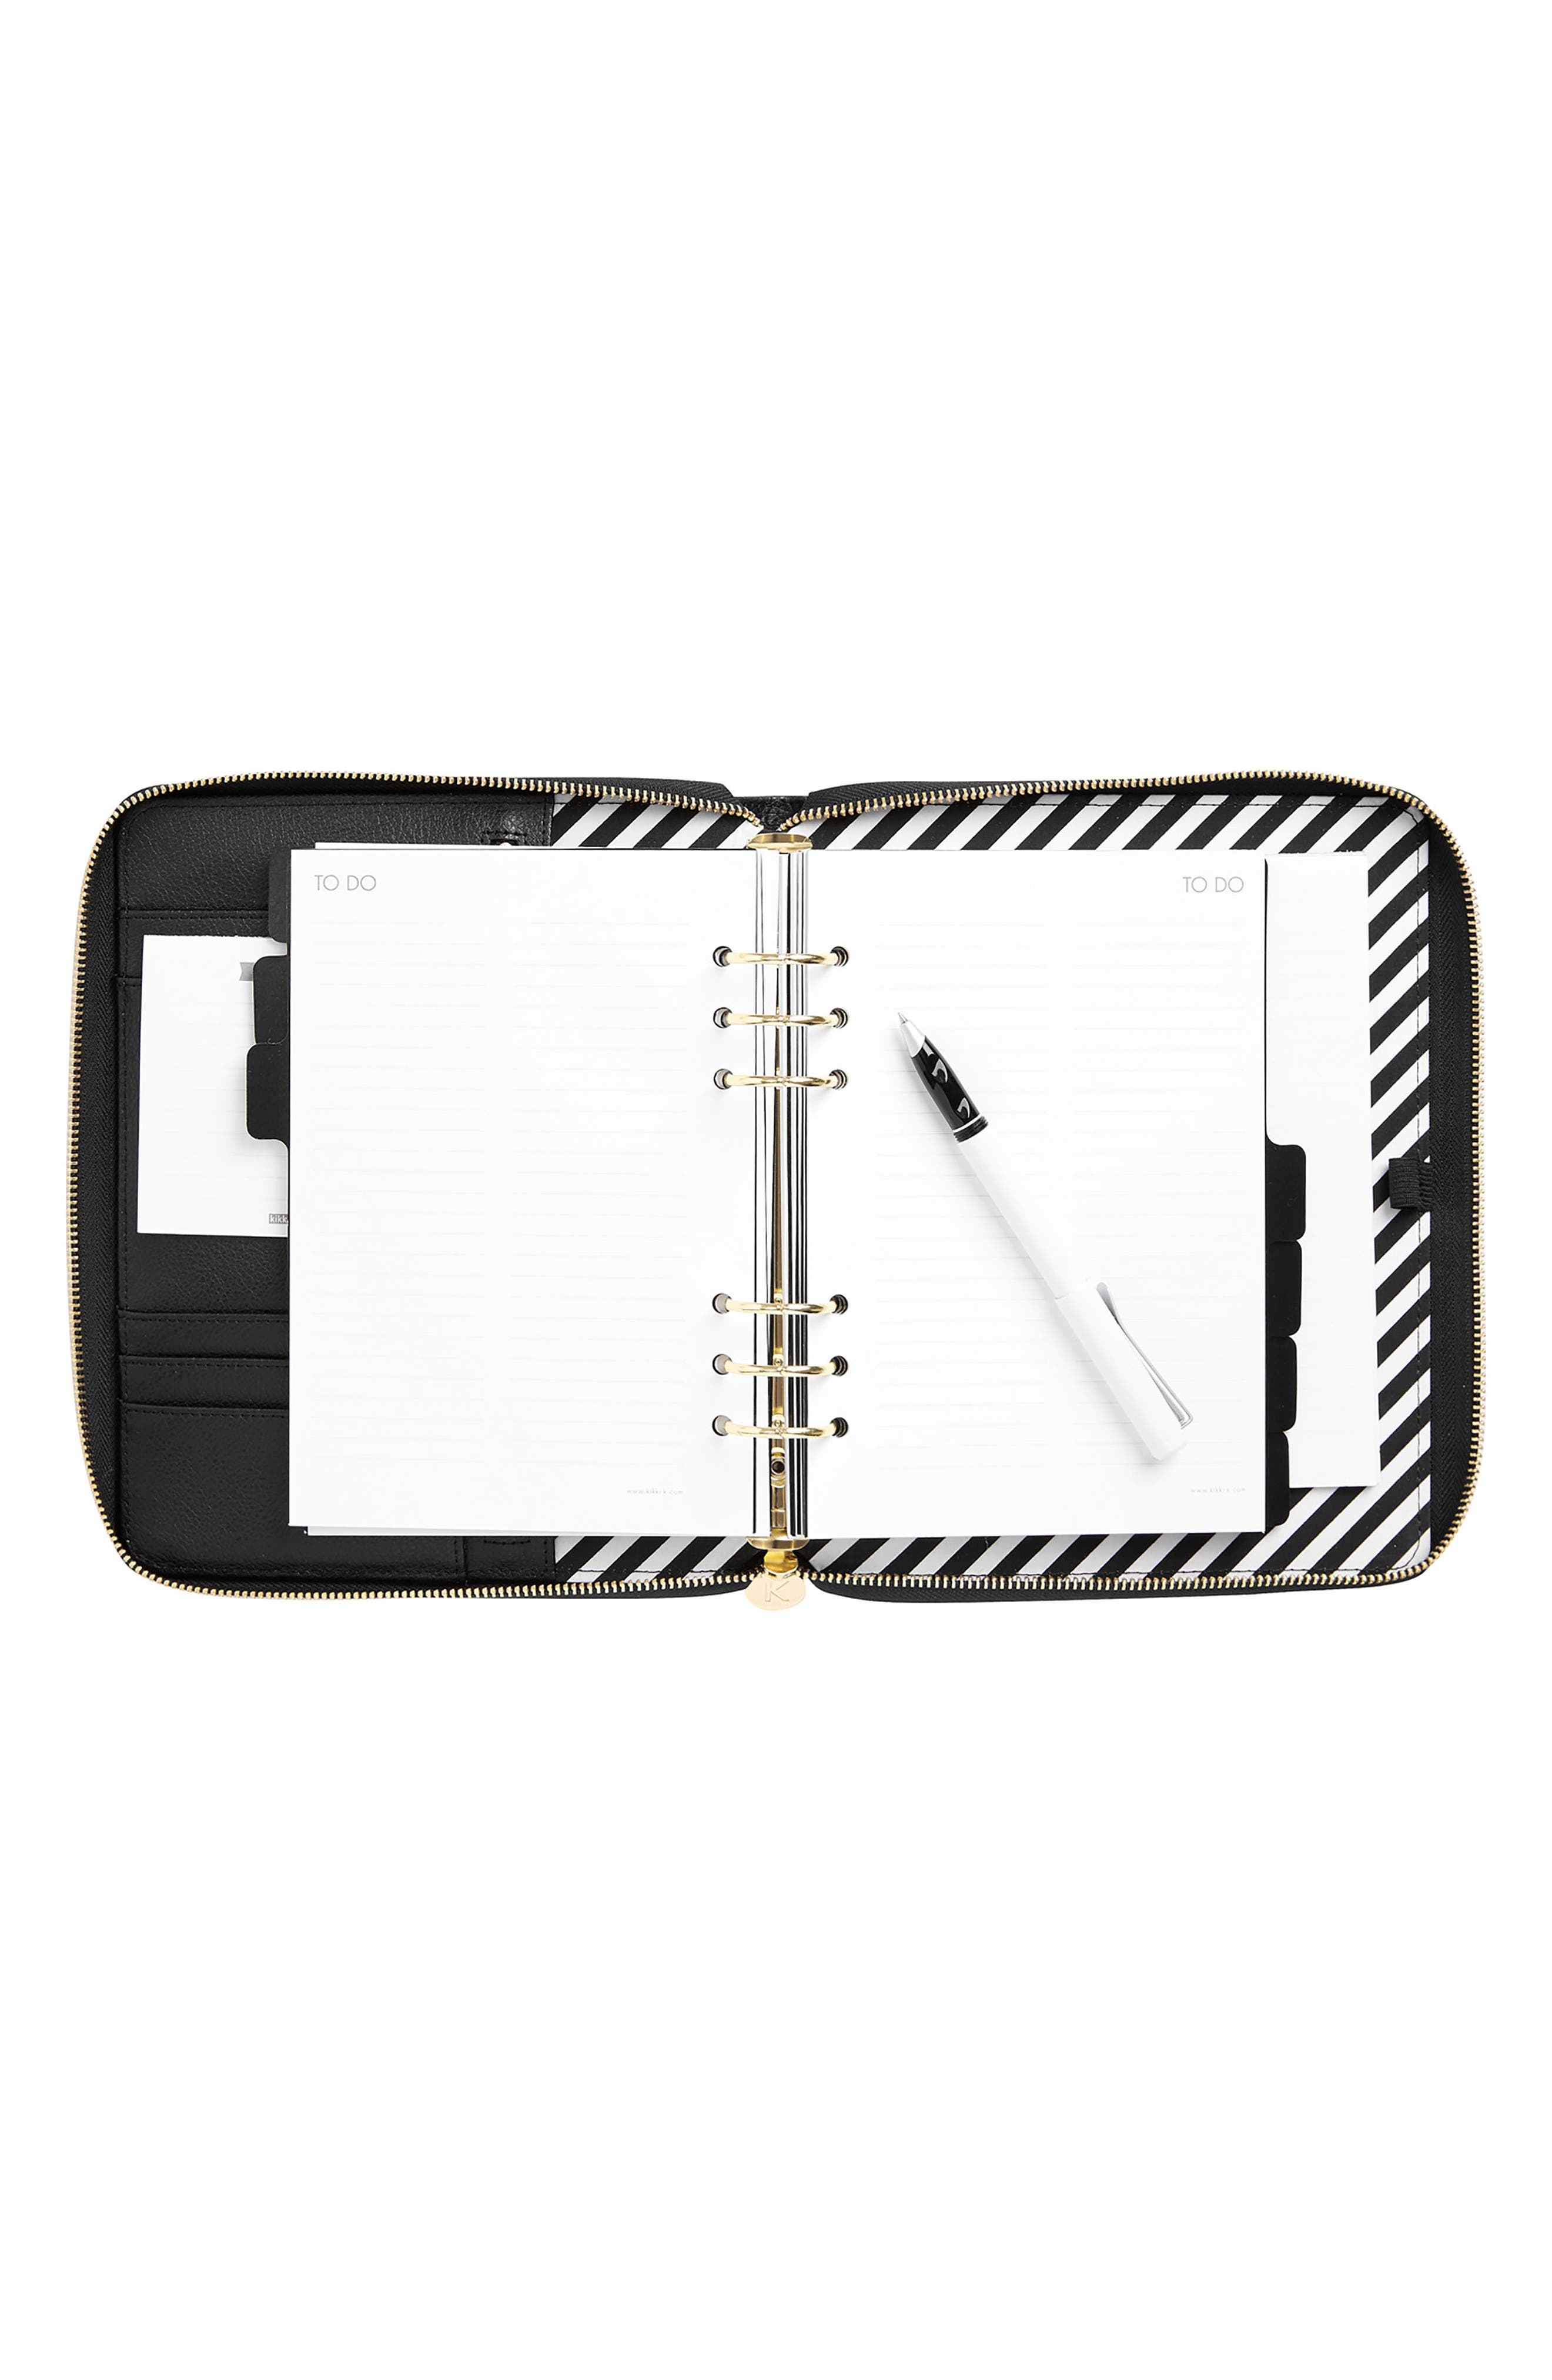 Zip-Around Leather 18-Month Perpetual Planner,                             Alternate thumbnail 3, color,                             JET BLACK LARGE